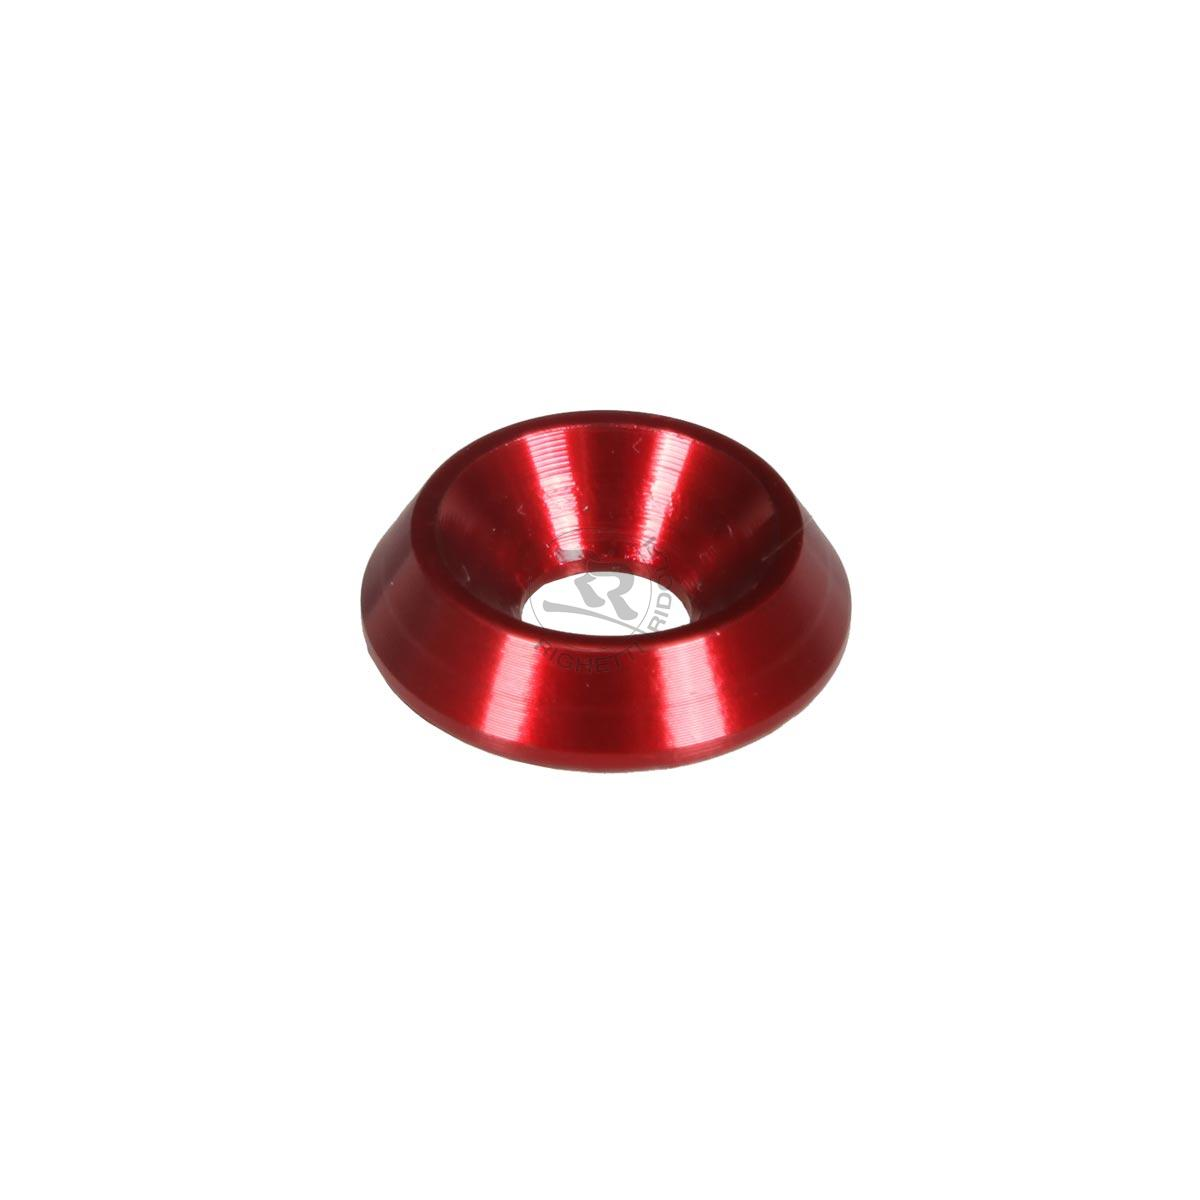 ALUMINIUM COUNTERSUNK WASHER 18 x 6mm, RED ANODIZED